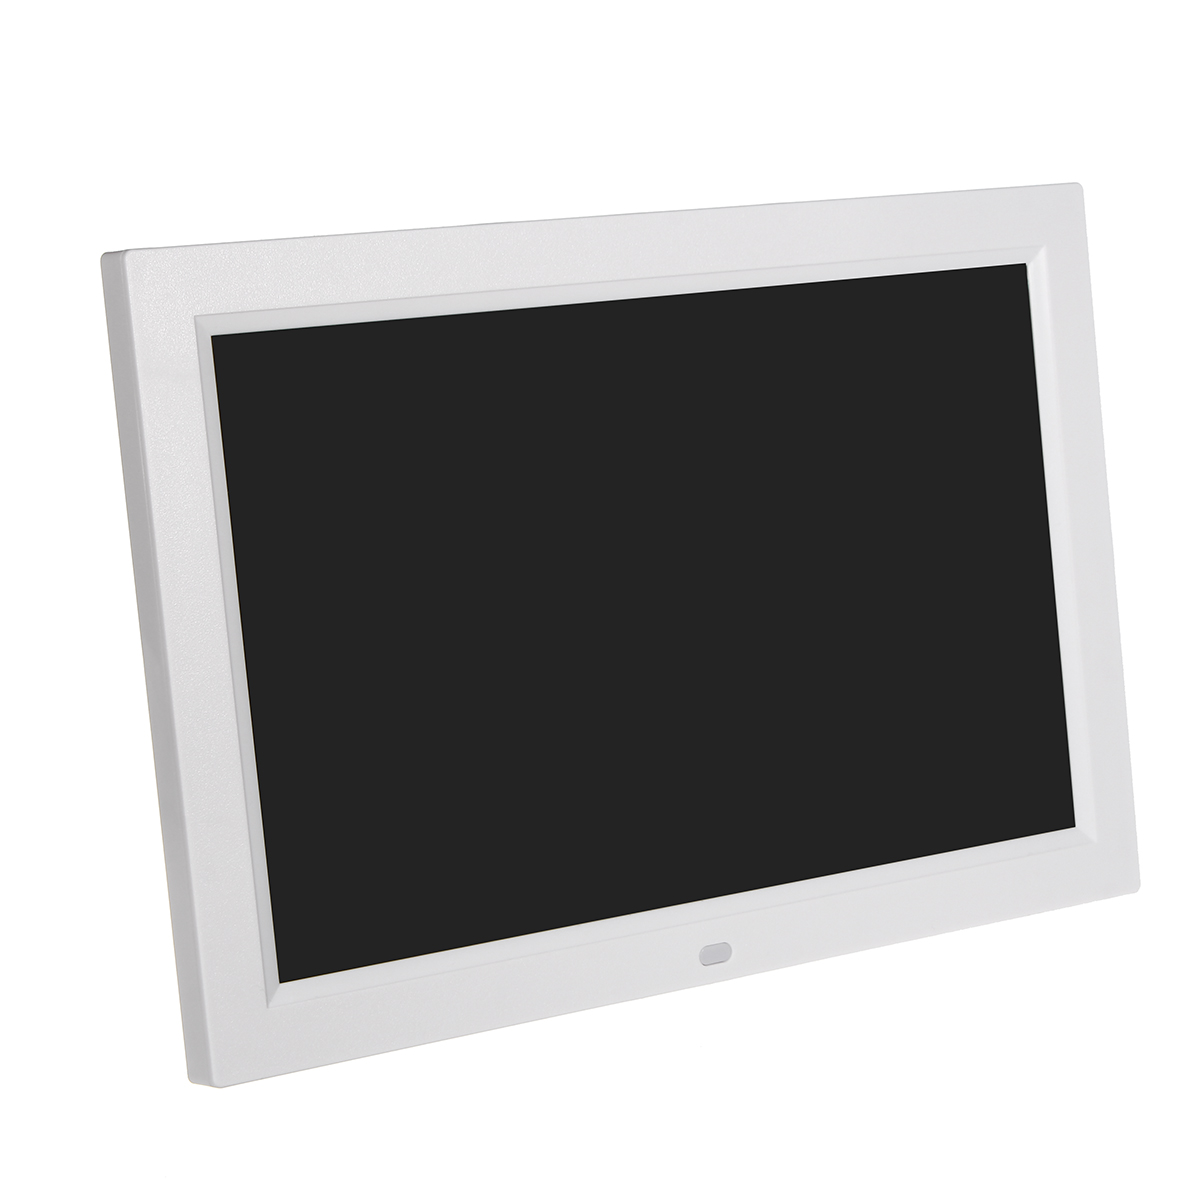 12 Inch 1080P Digital Photo Frame with Remote